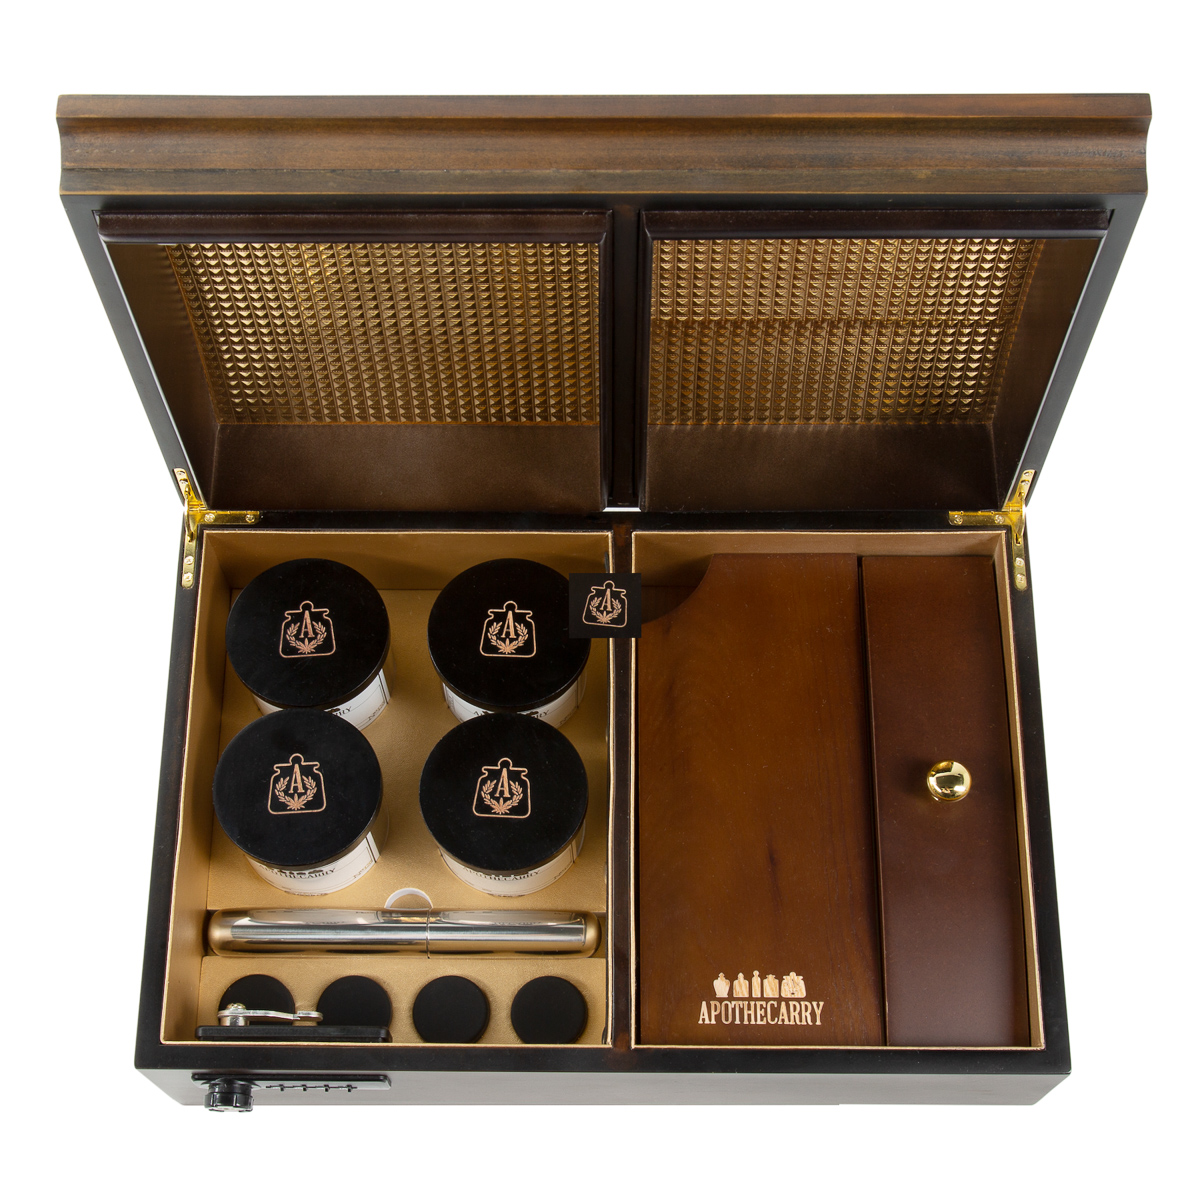 Cannabis humidor holds four strains in a beautiful wood case.